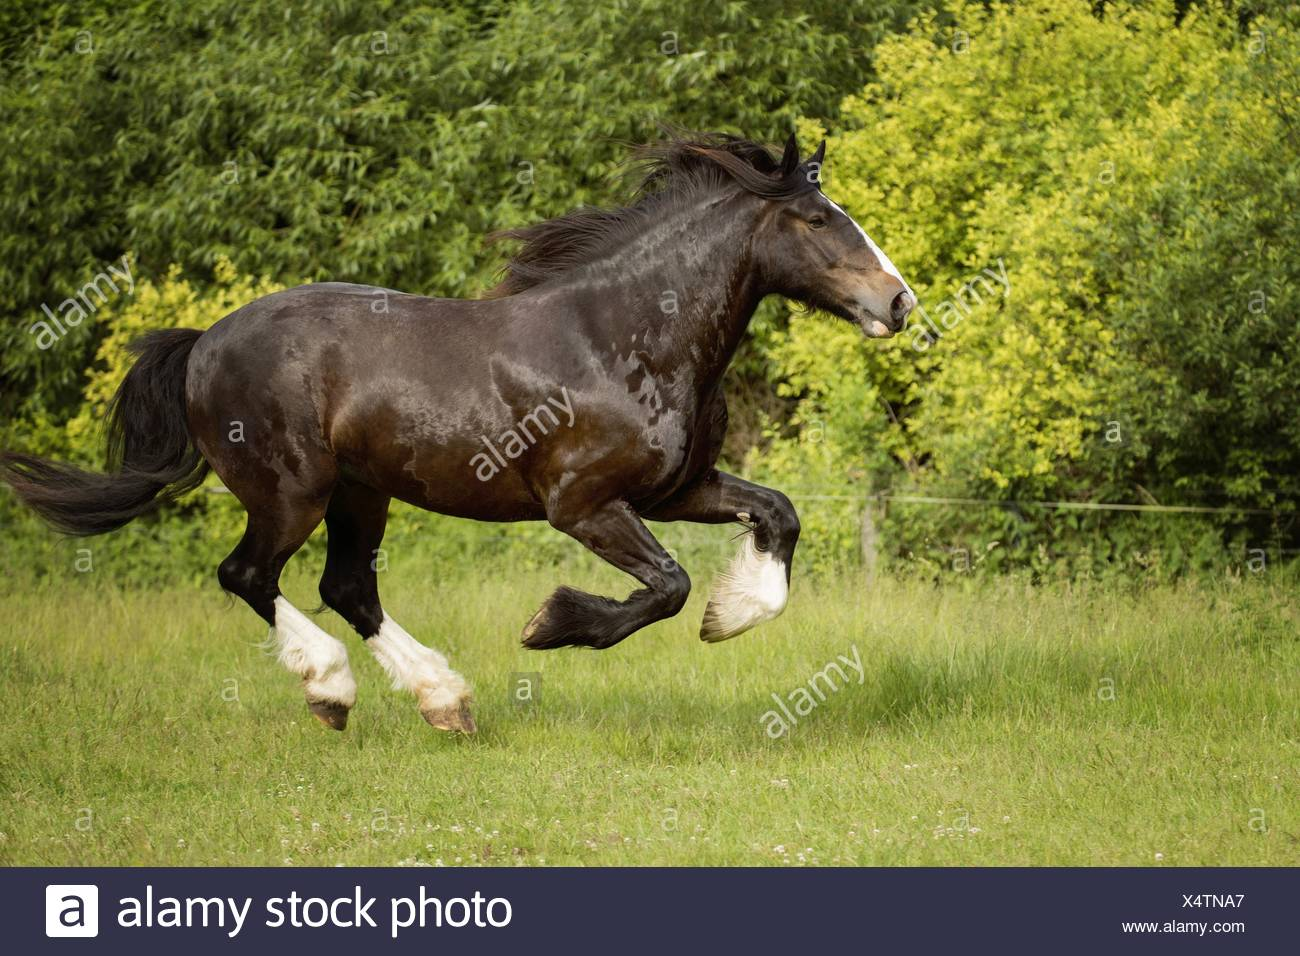 Shire Horse High Resolution Stock Photography And Images Alamy